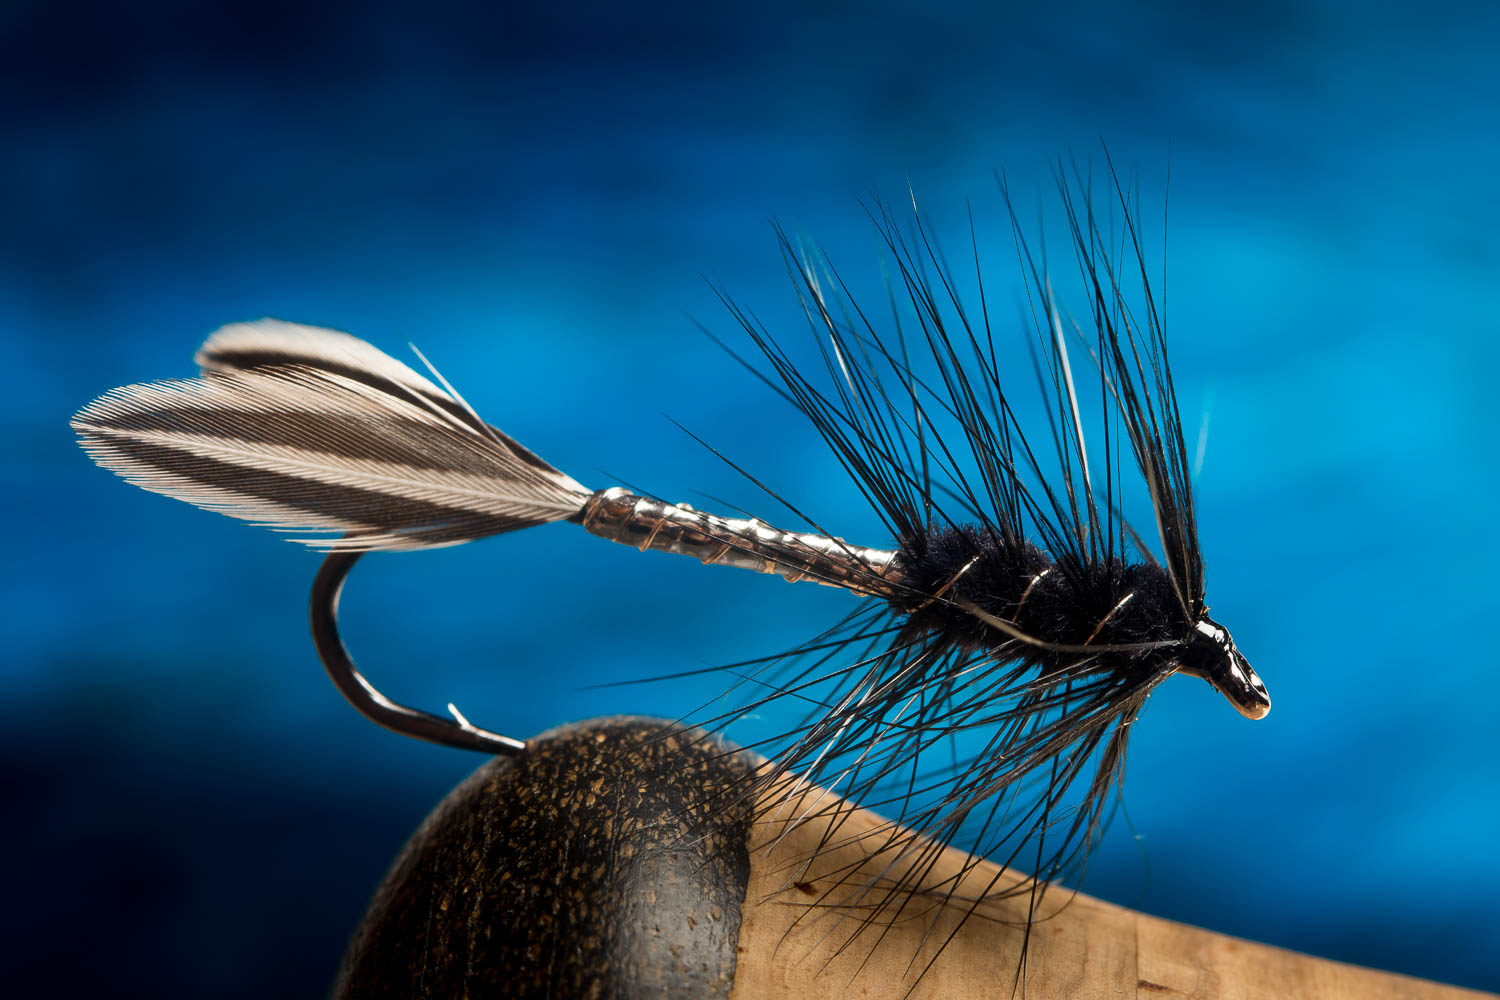 1.This has 2 body feather from Jungle Cock tied splayed as tail - and a black hackle palmered over the front part of the body. This is often referred to as the All Black version, though it has a silver part of the body. This is Pete Narancich's original, and the favourite of Mr Bates.